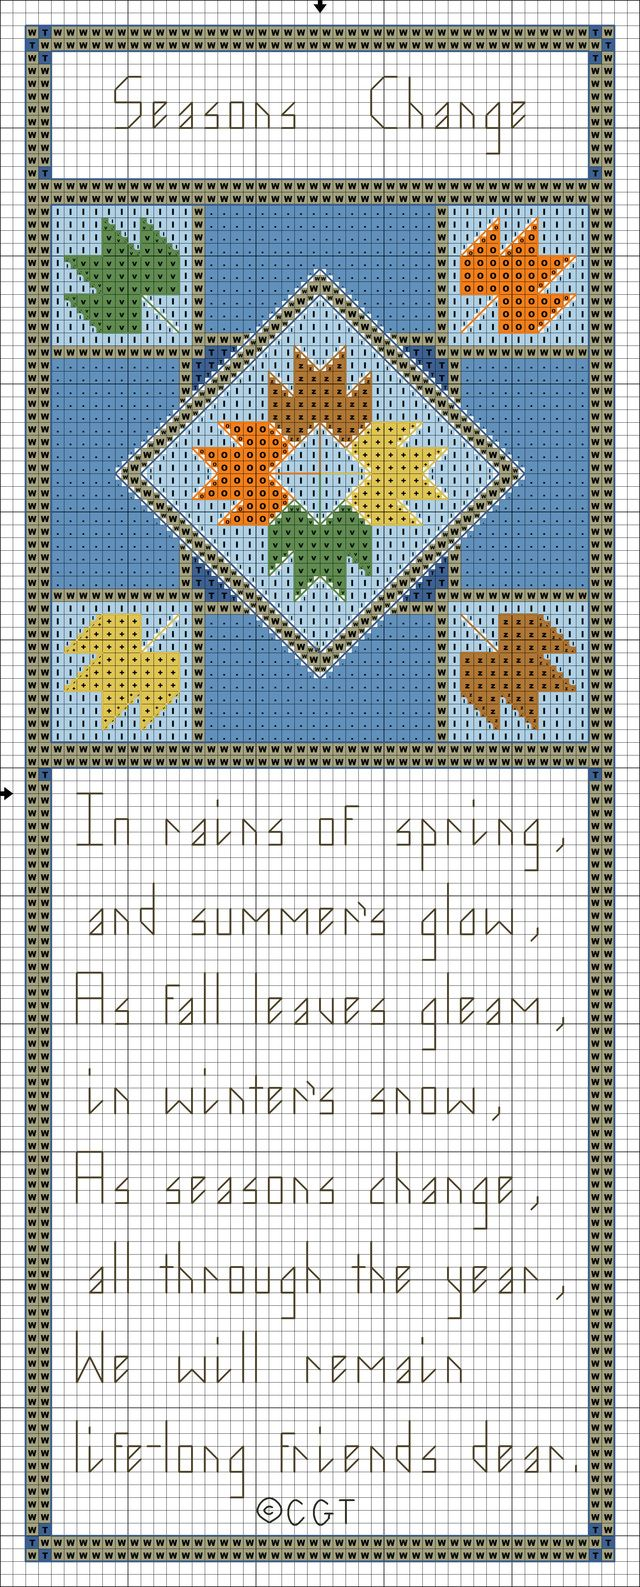 299 Best Images About Free Cross Stitch Patterns On